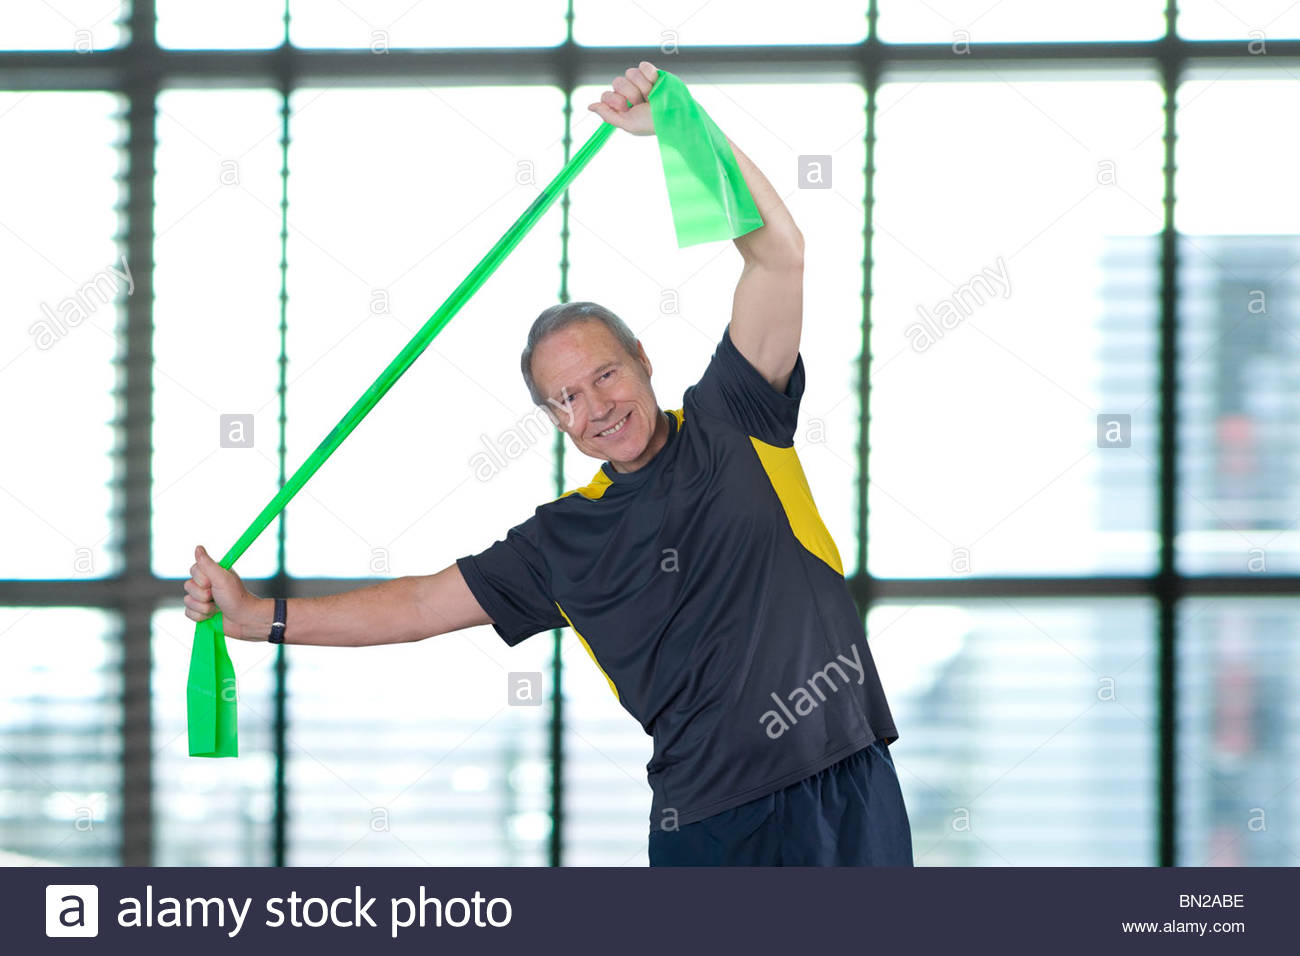 Portrait of smiling man stretching with resistance band overhead - Stock Image